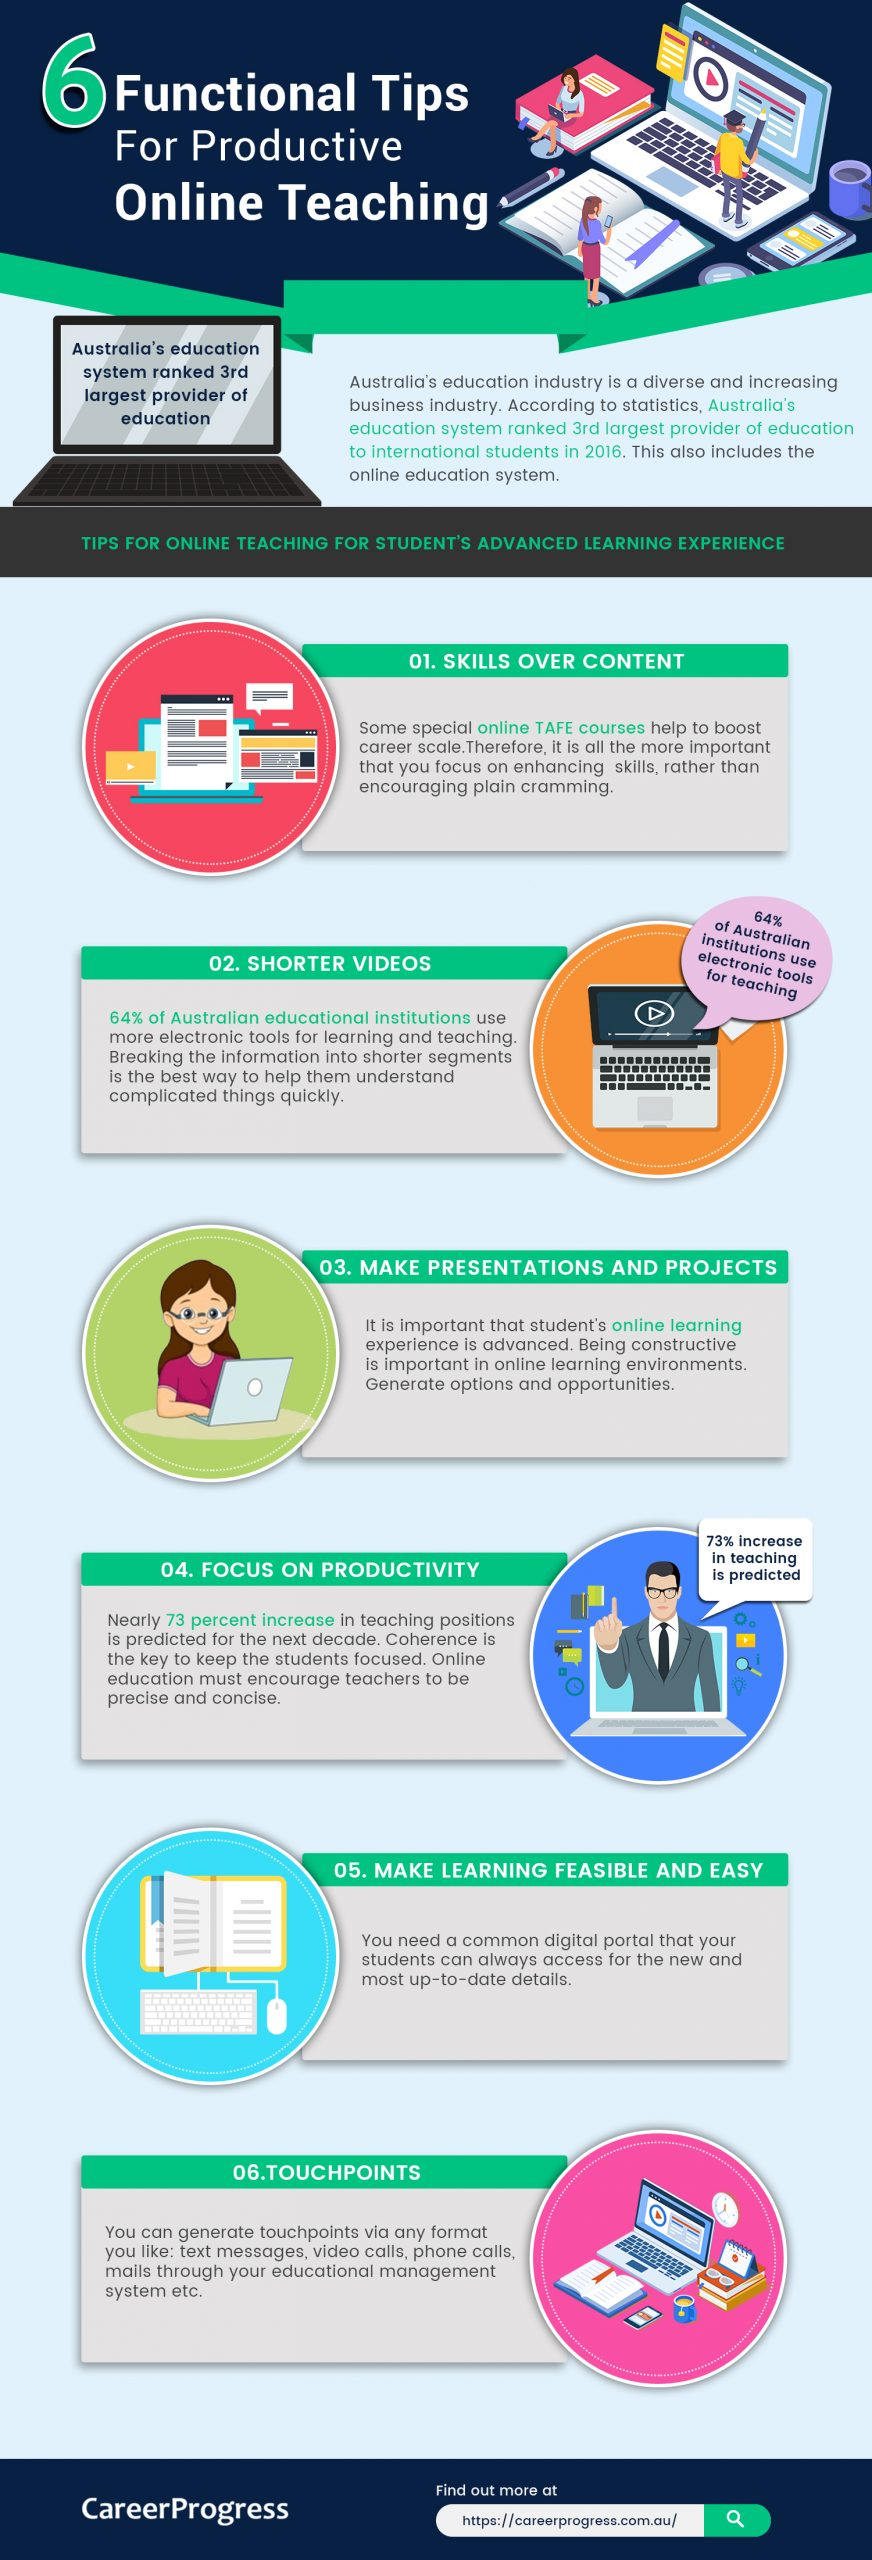 6 Functional Tips For Productive Online Teaching Infographic